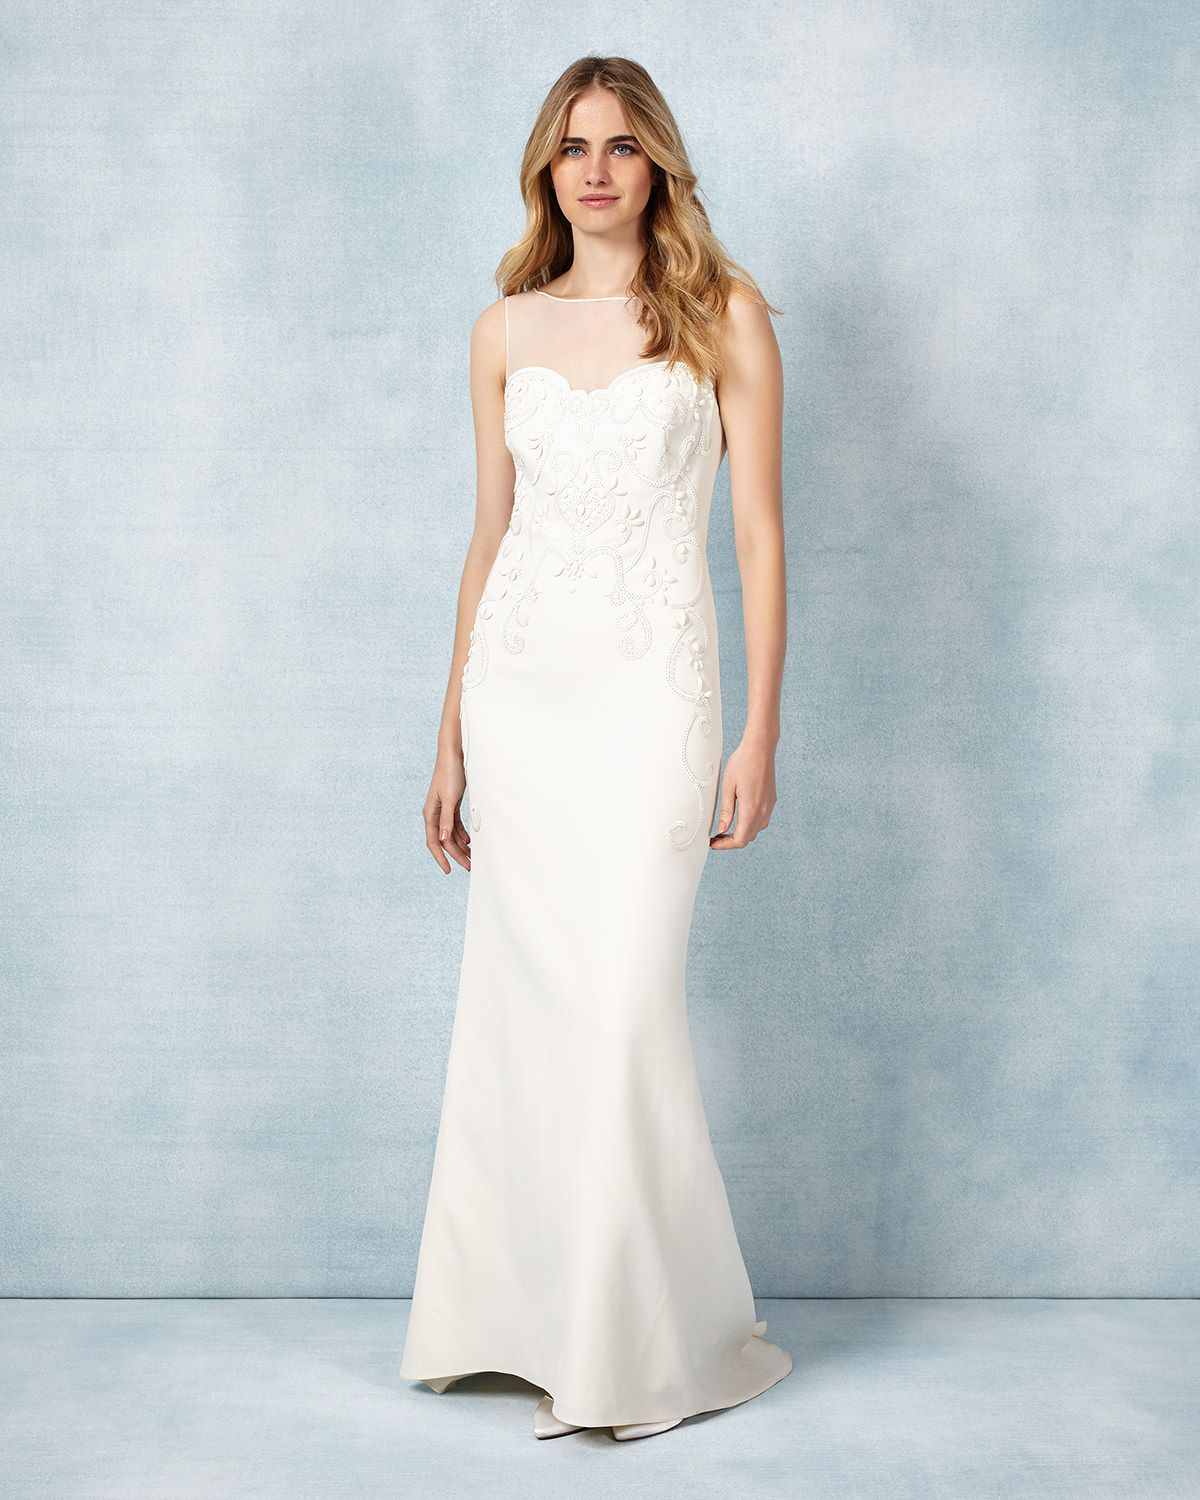 Wedding Dresses Available On The High Street